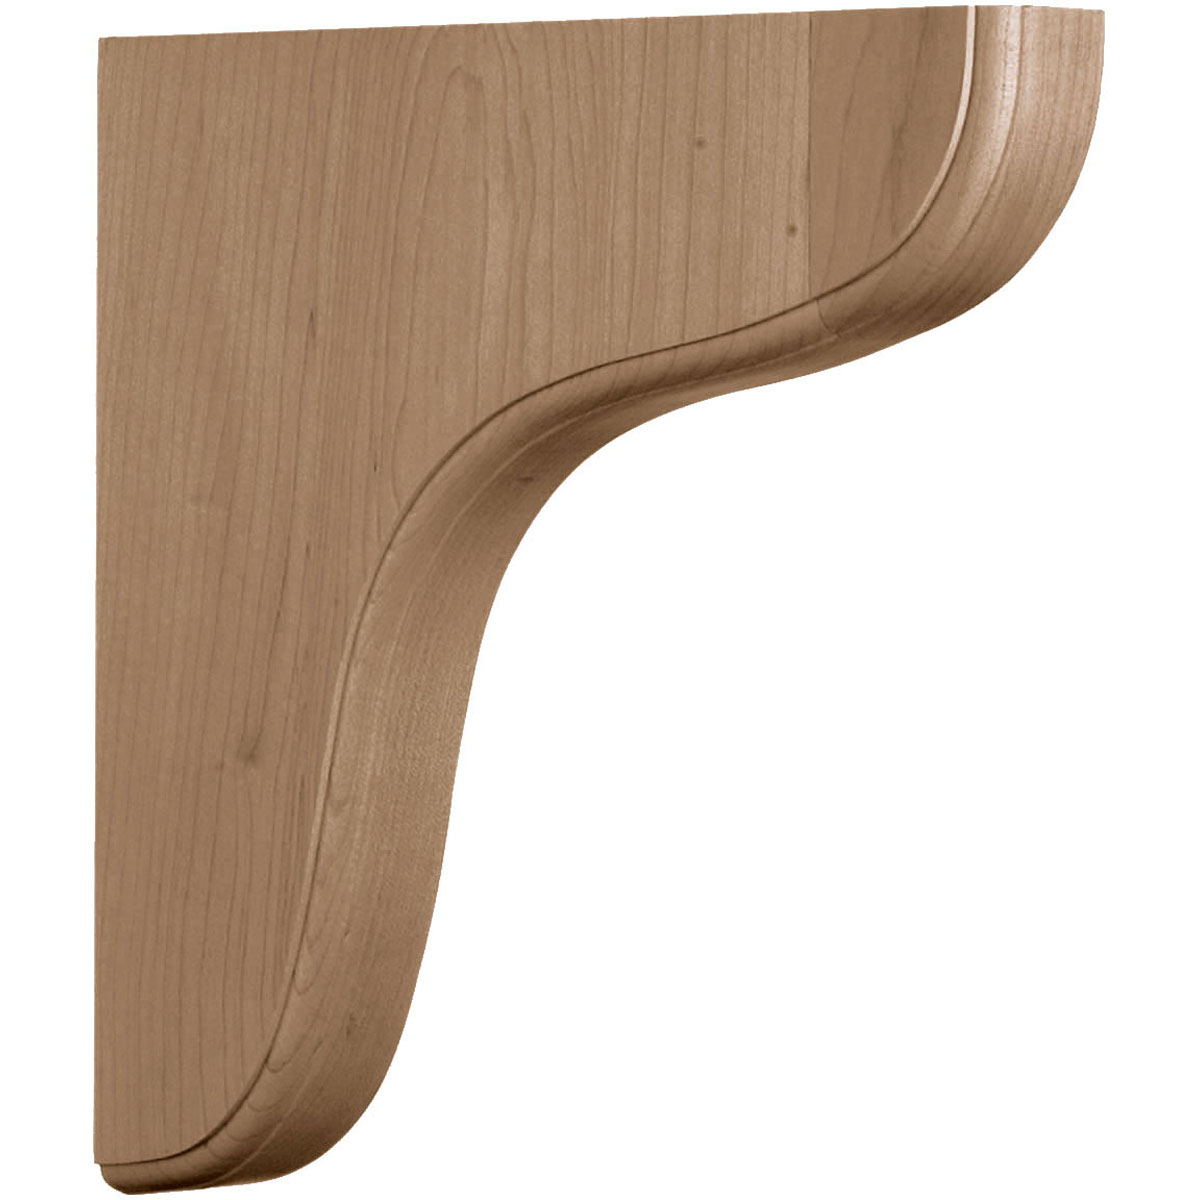 Wooden Shelf Brackets Patterns